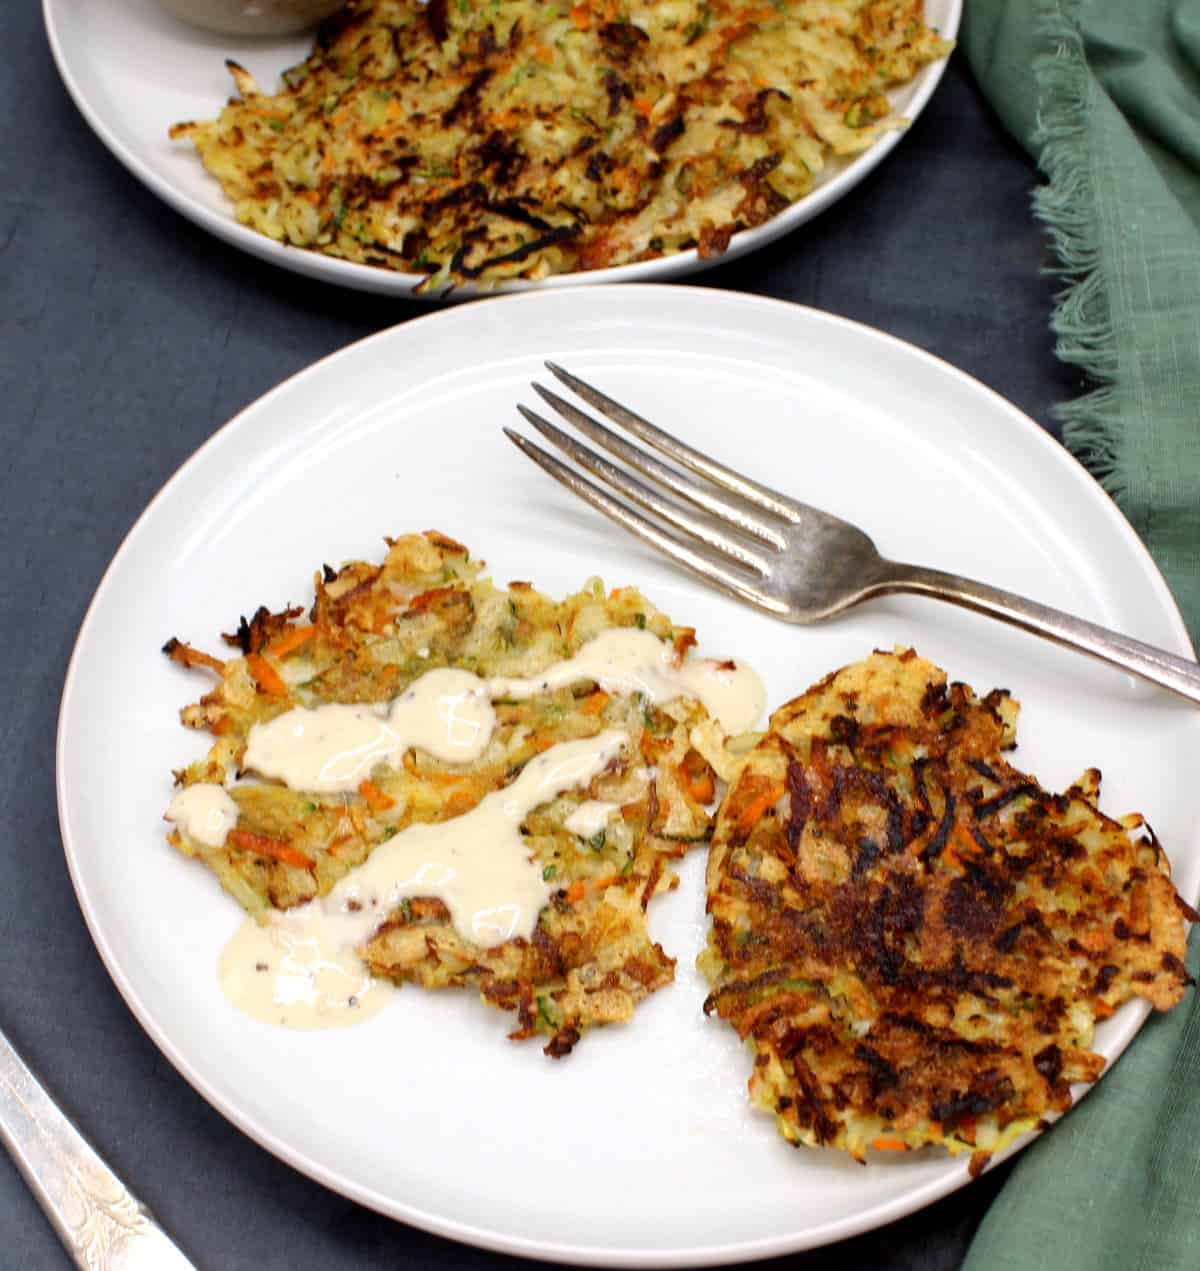 Front photo of two vegan hash browns on white plate with a fork.